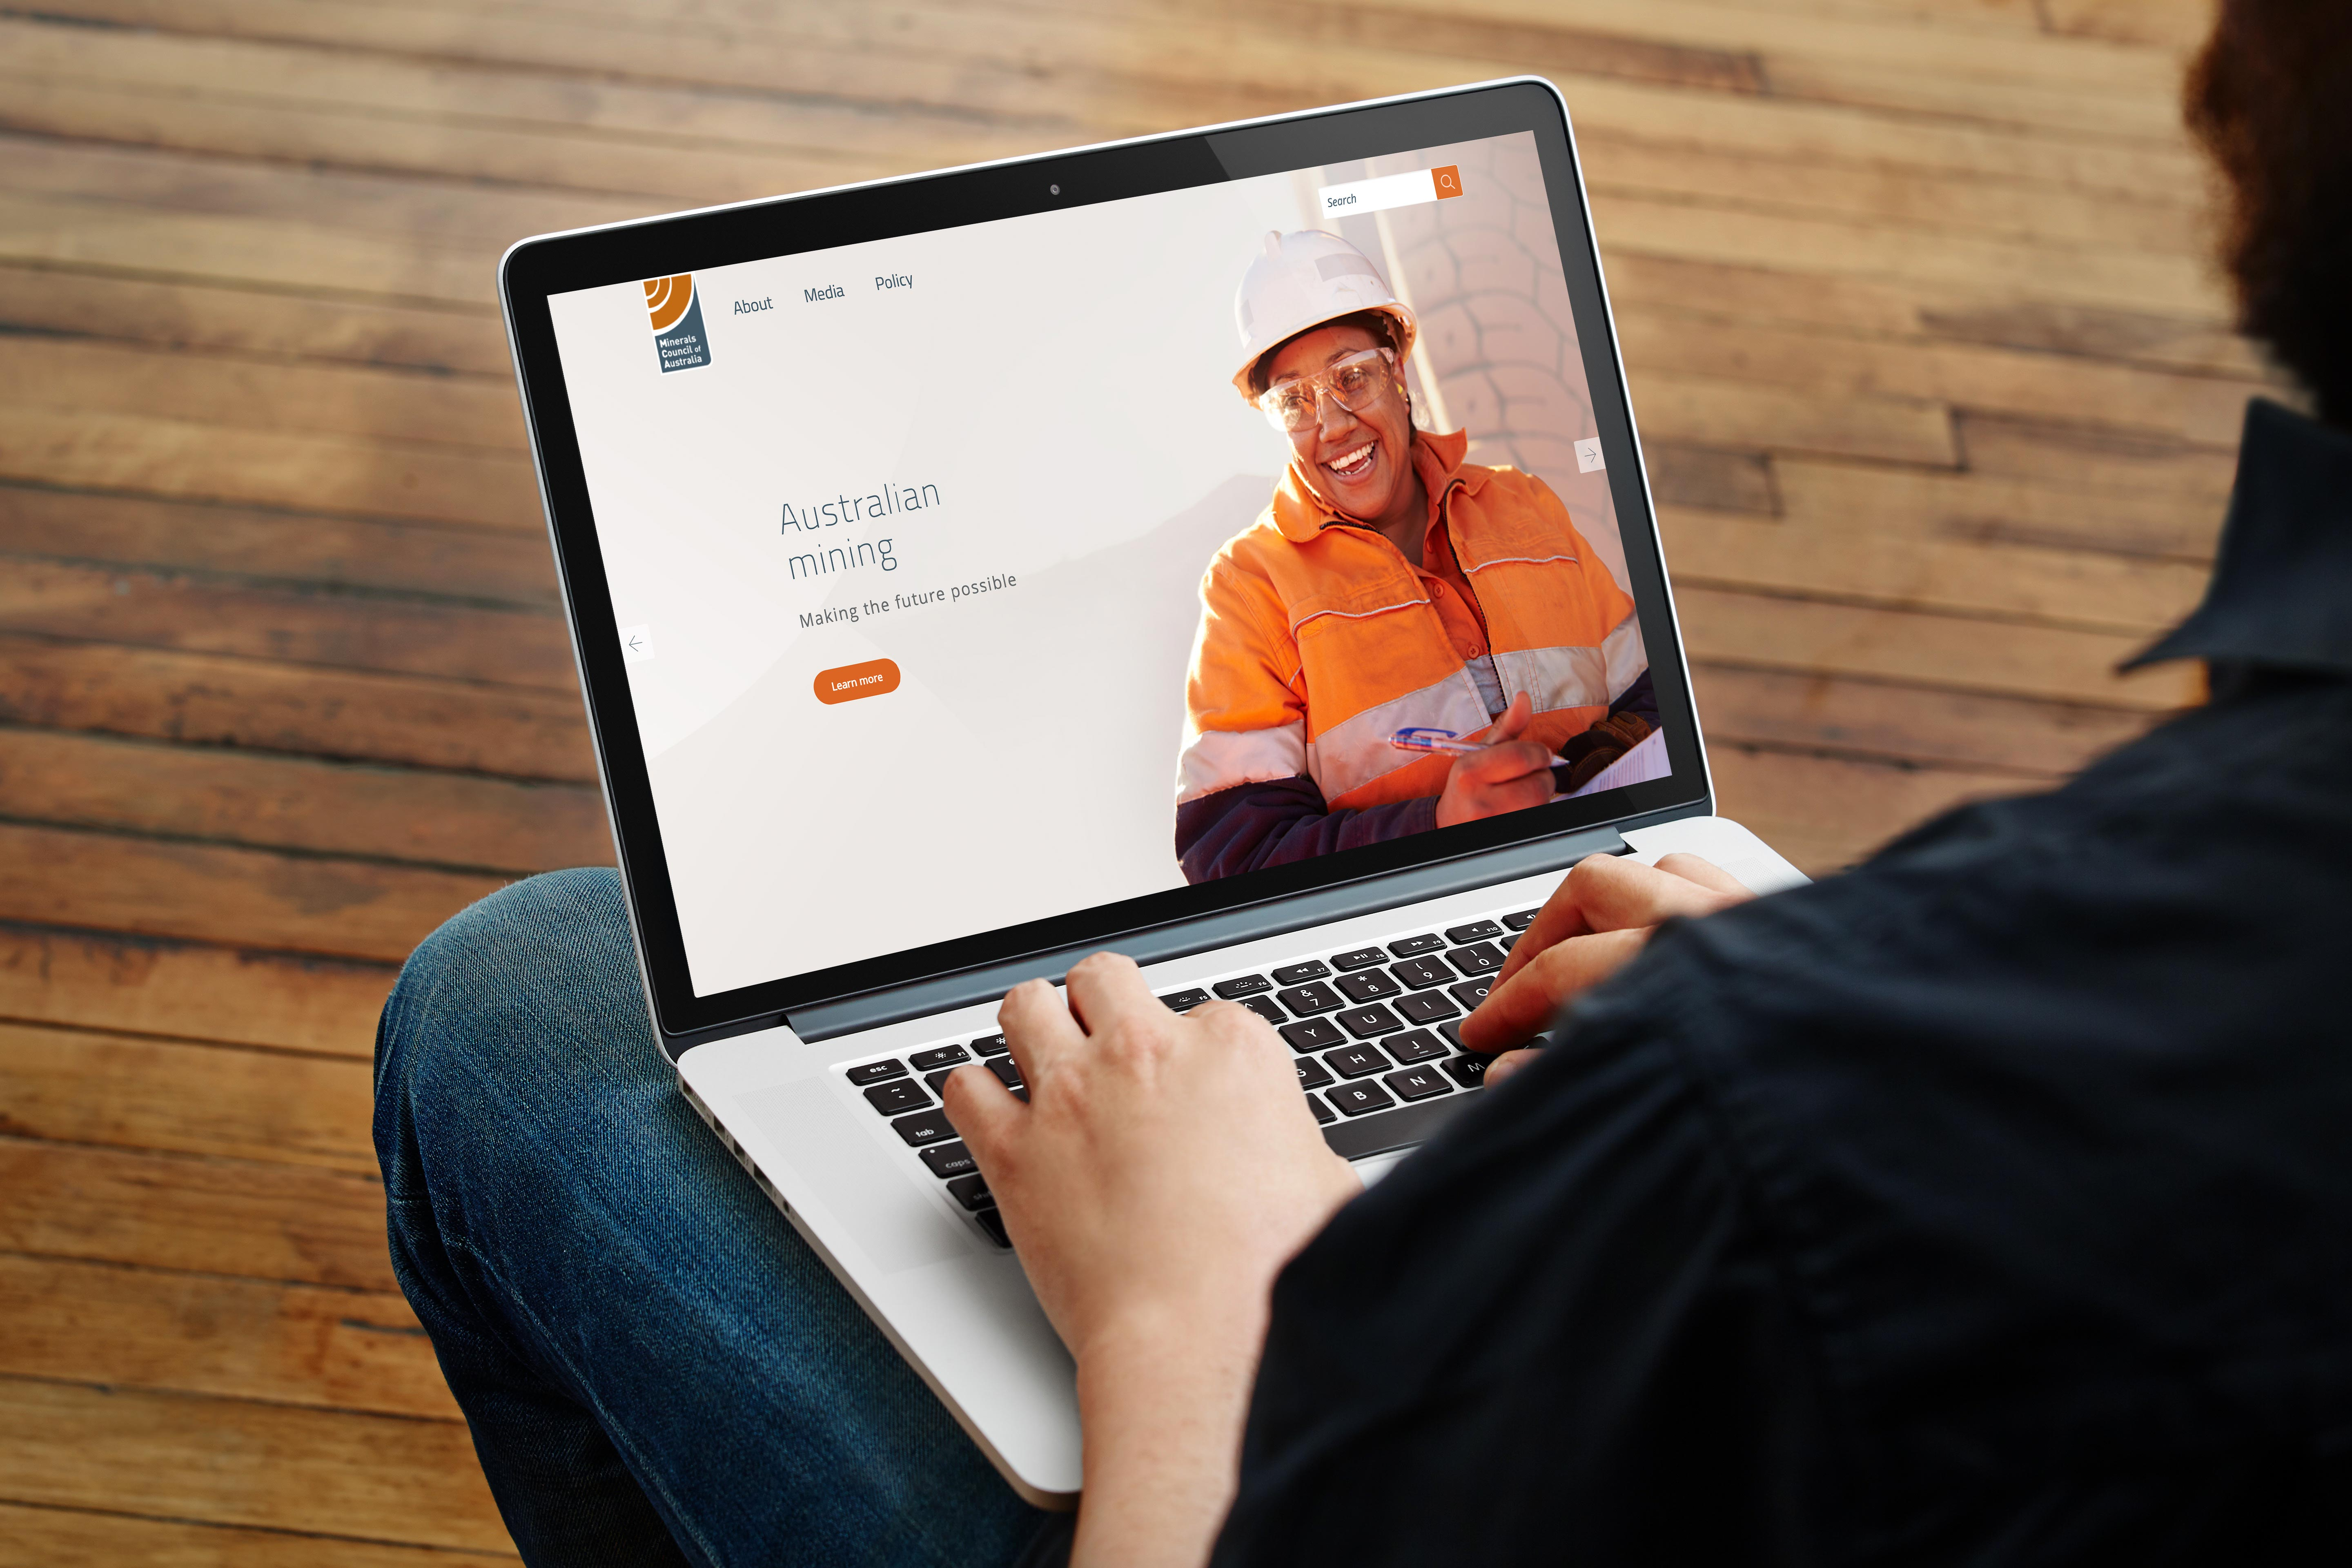 Minerals Council of Australia homepage on a laptop.